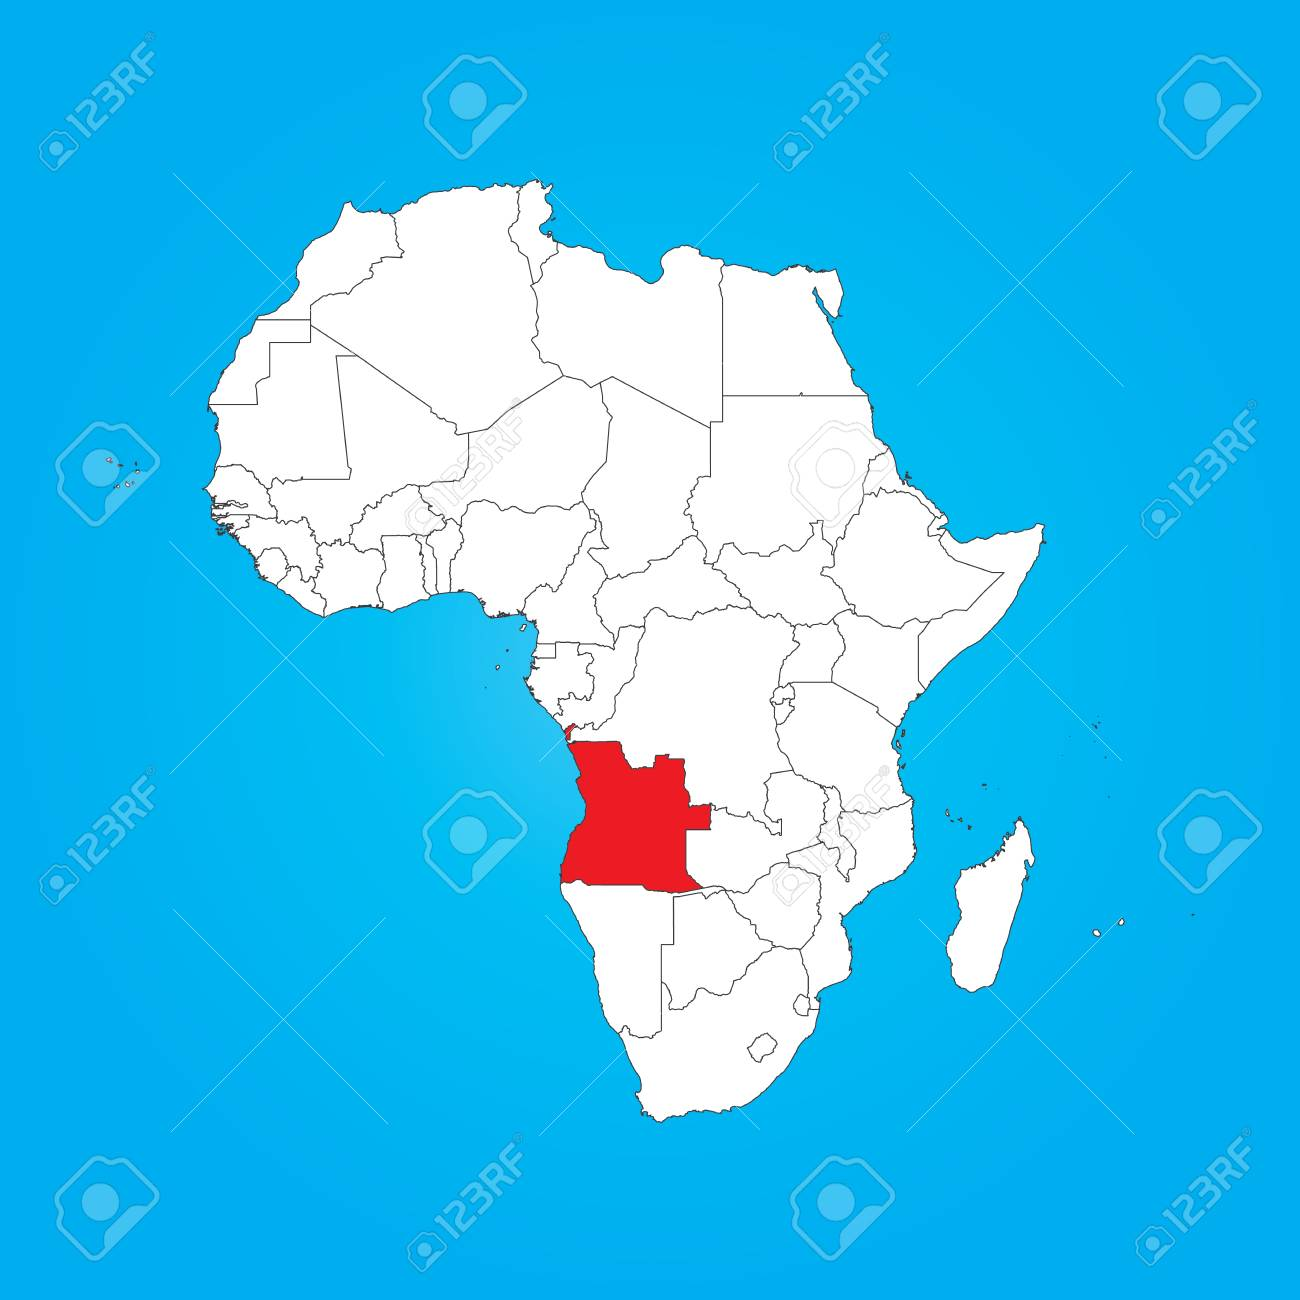 Angola On Africa Map.A Map Of Africa With A Selected Country Of Angola Stock Photo